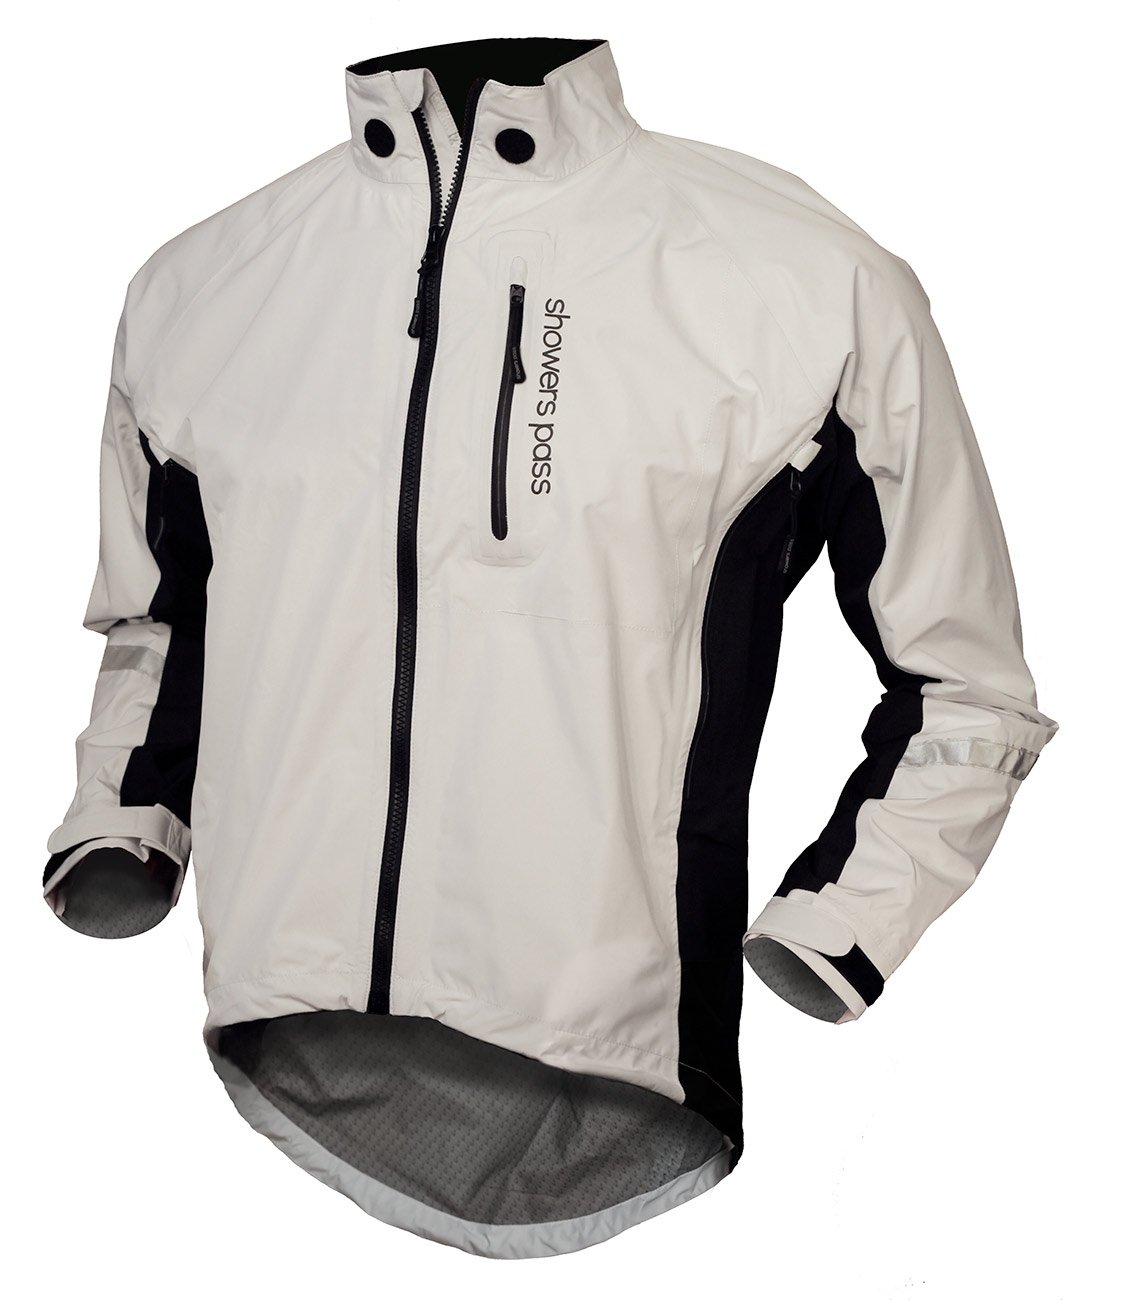 Double Century RTX Men's Cycling Rain Jacket